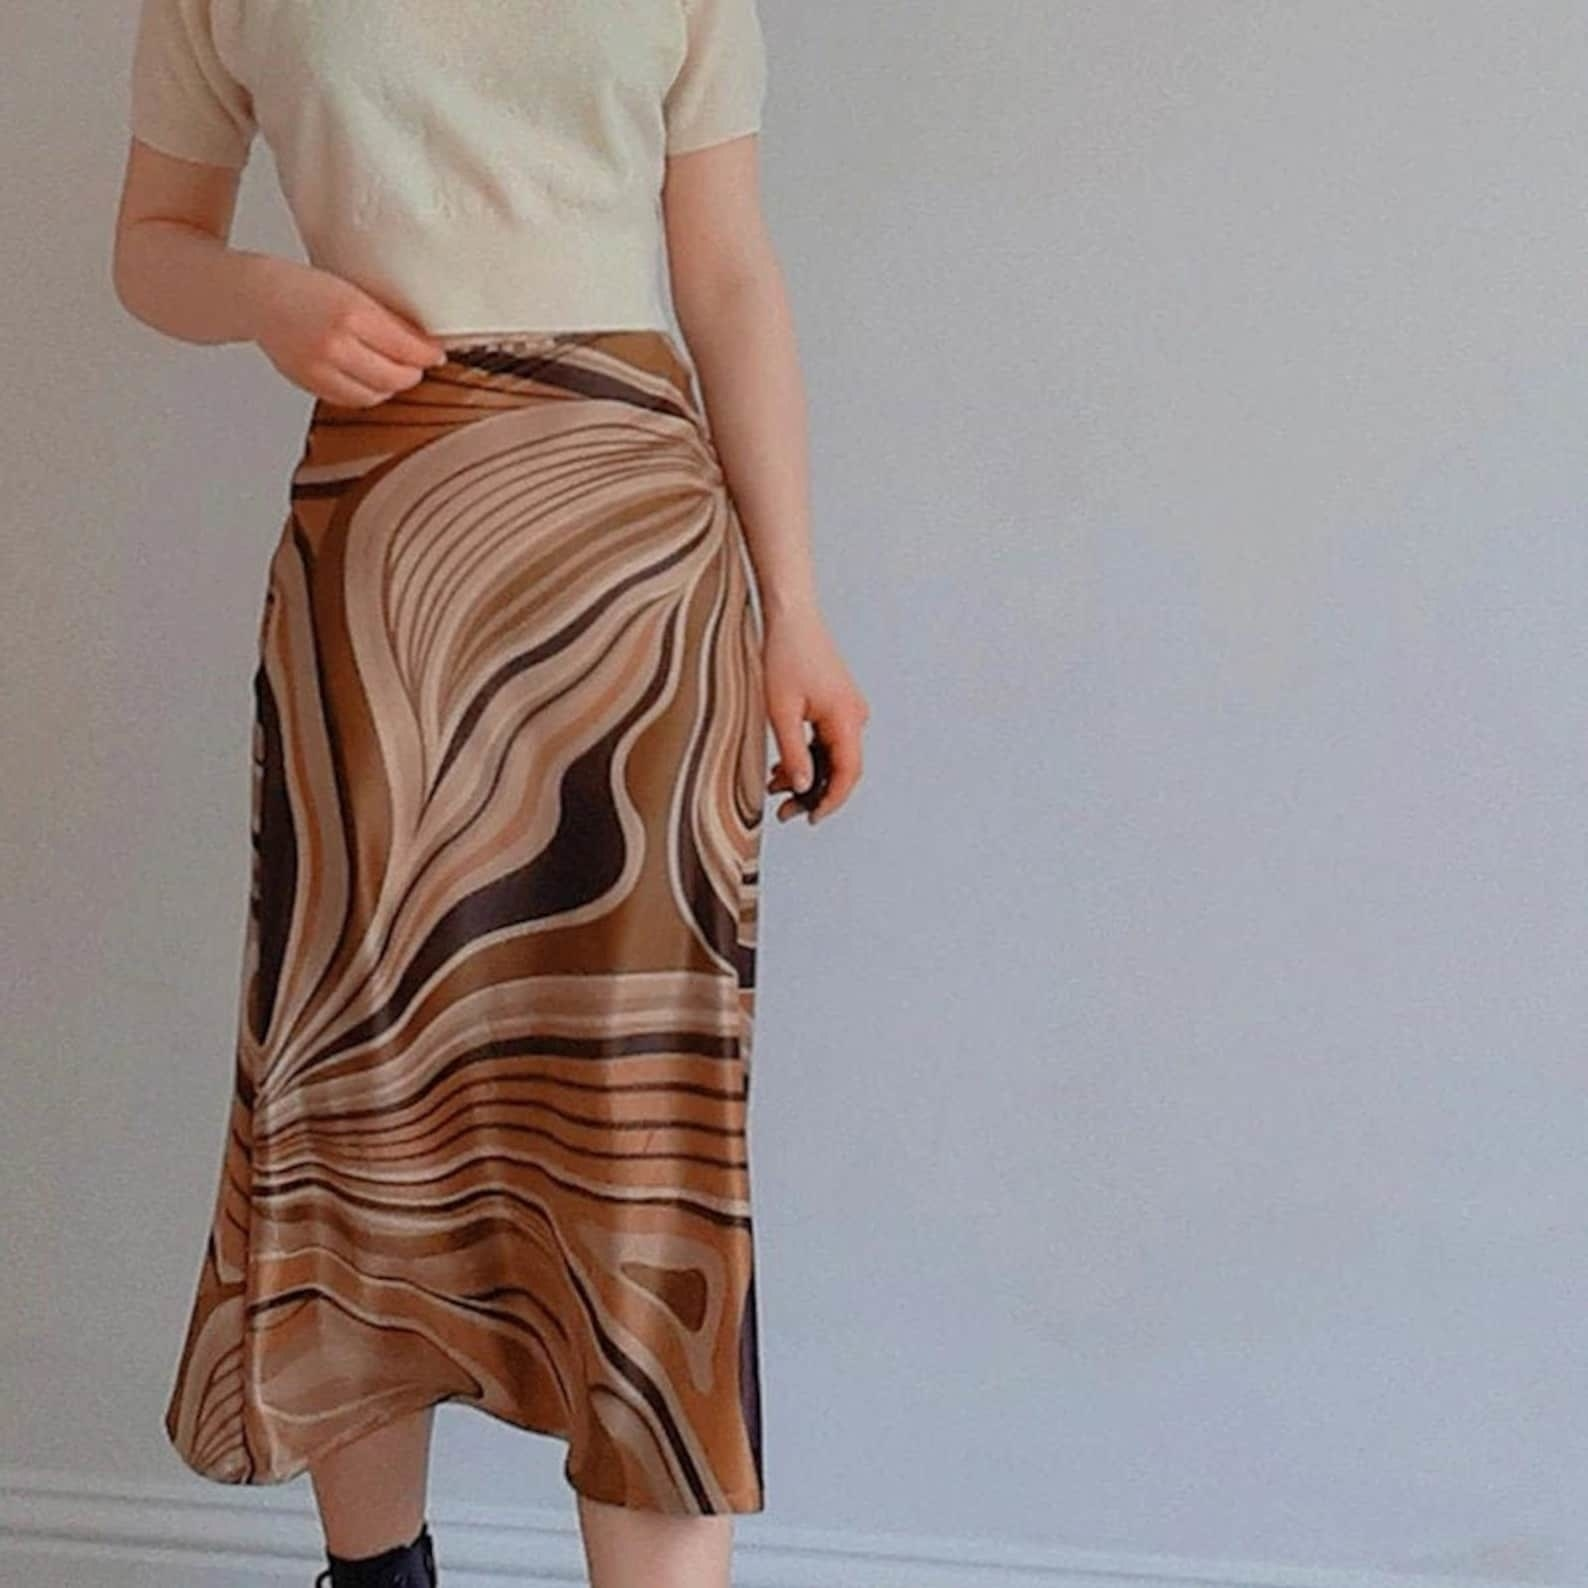 the marble-printed skirt with different hues of brown